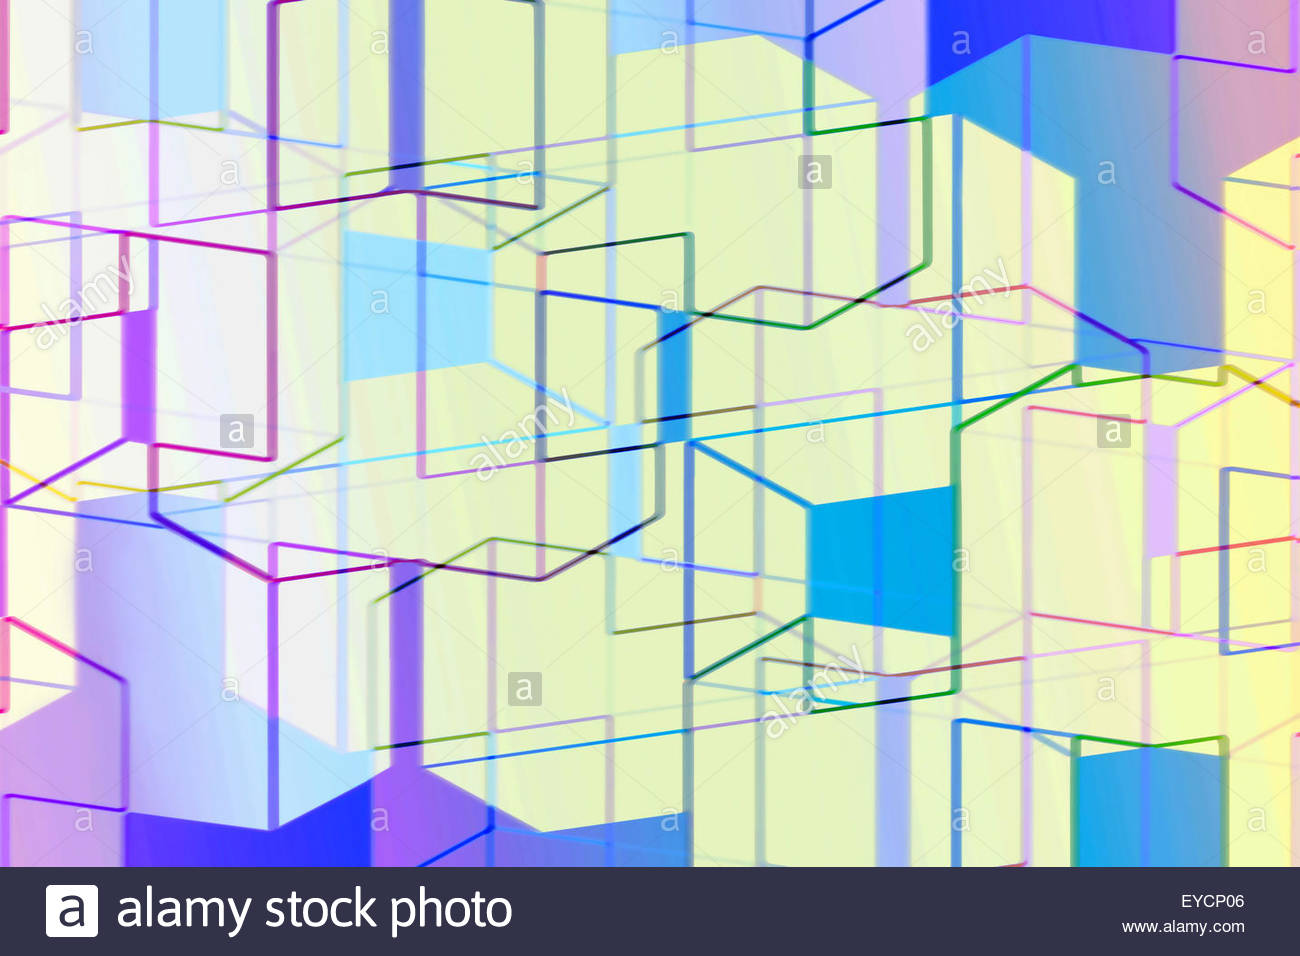 Abstract full frame three dimensional geometric backgrounds pattern Stock Photo